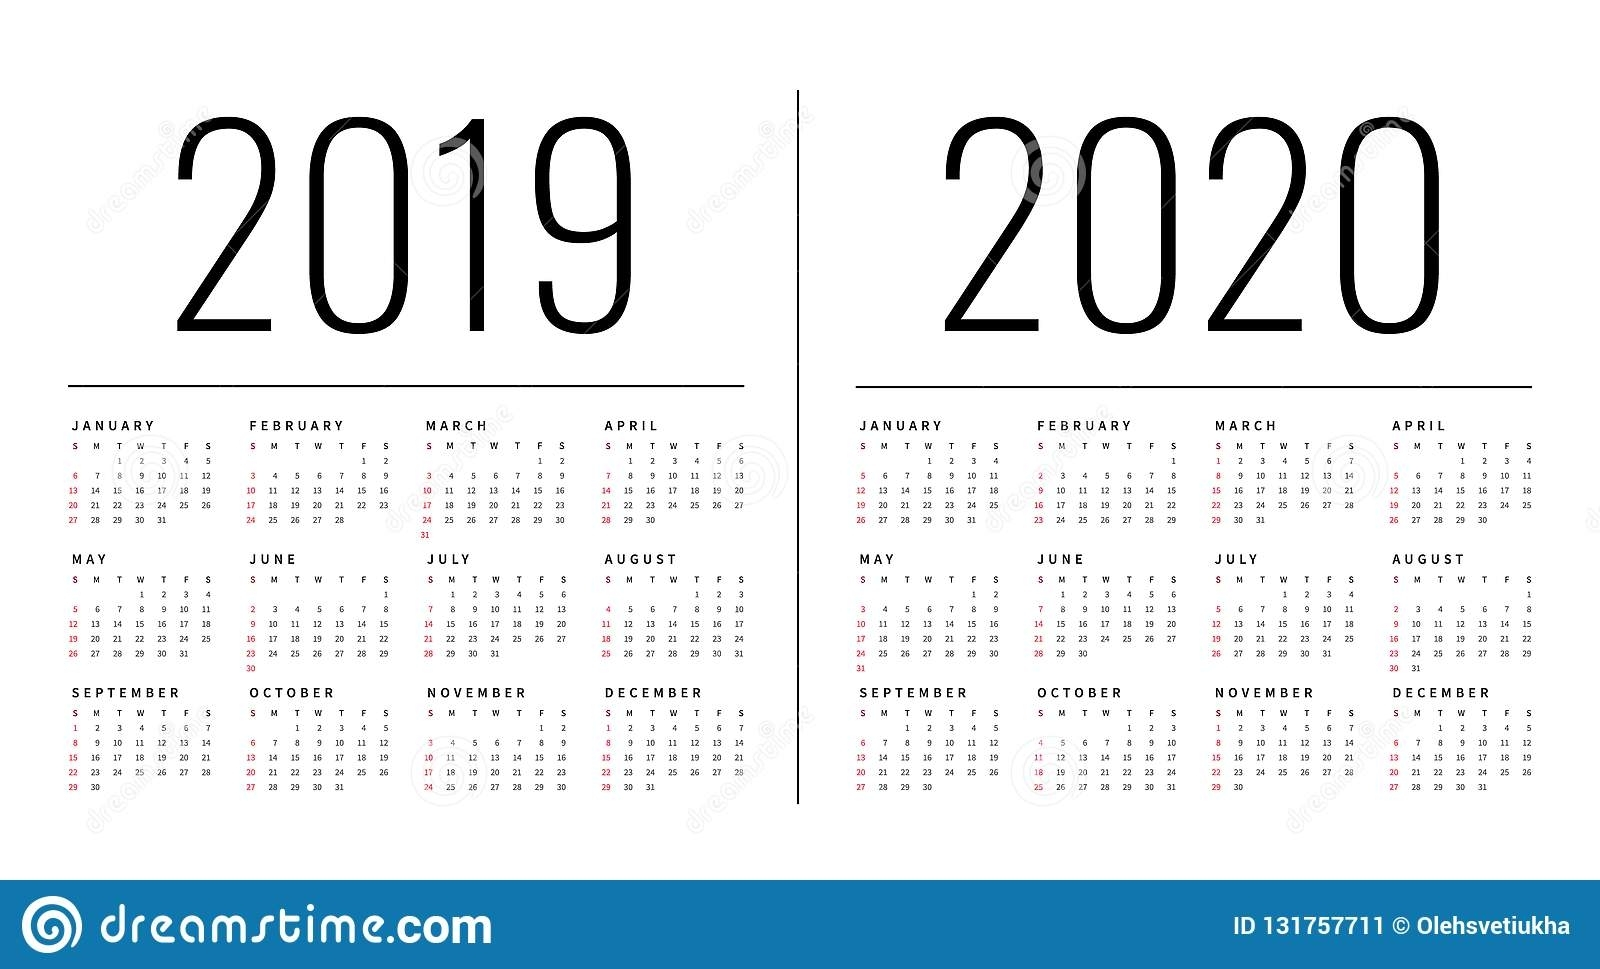 Mockup Simple Calendar Layout For 2019 And 2020 Years. Week Starts for Calendar June 2019 To July 2020